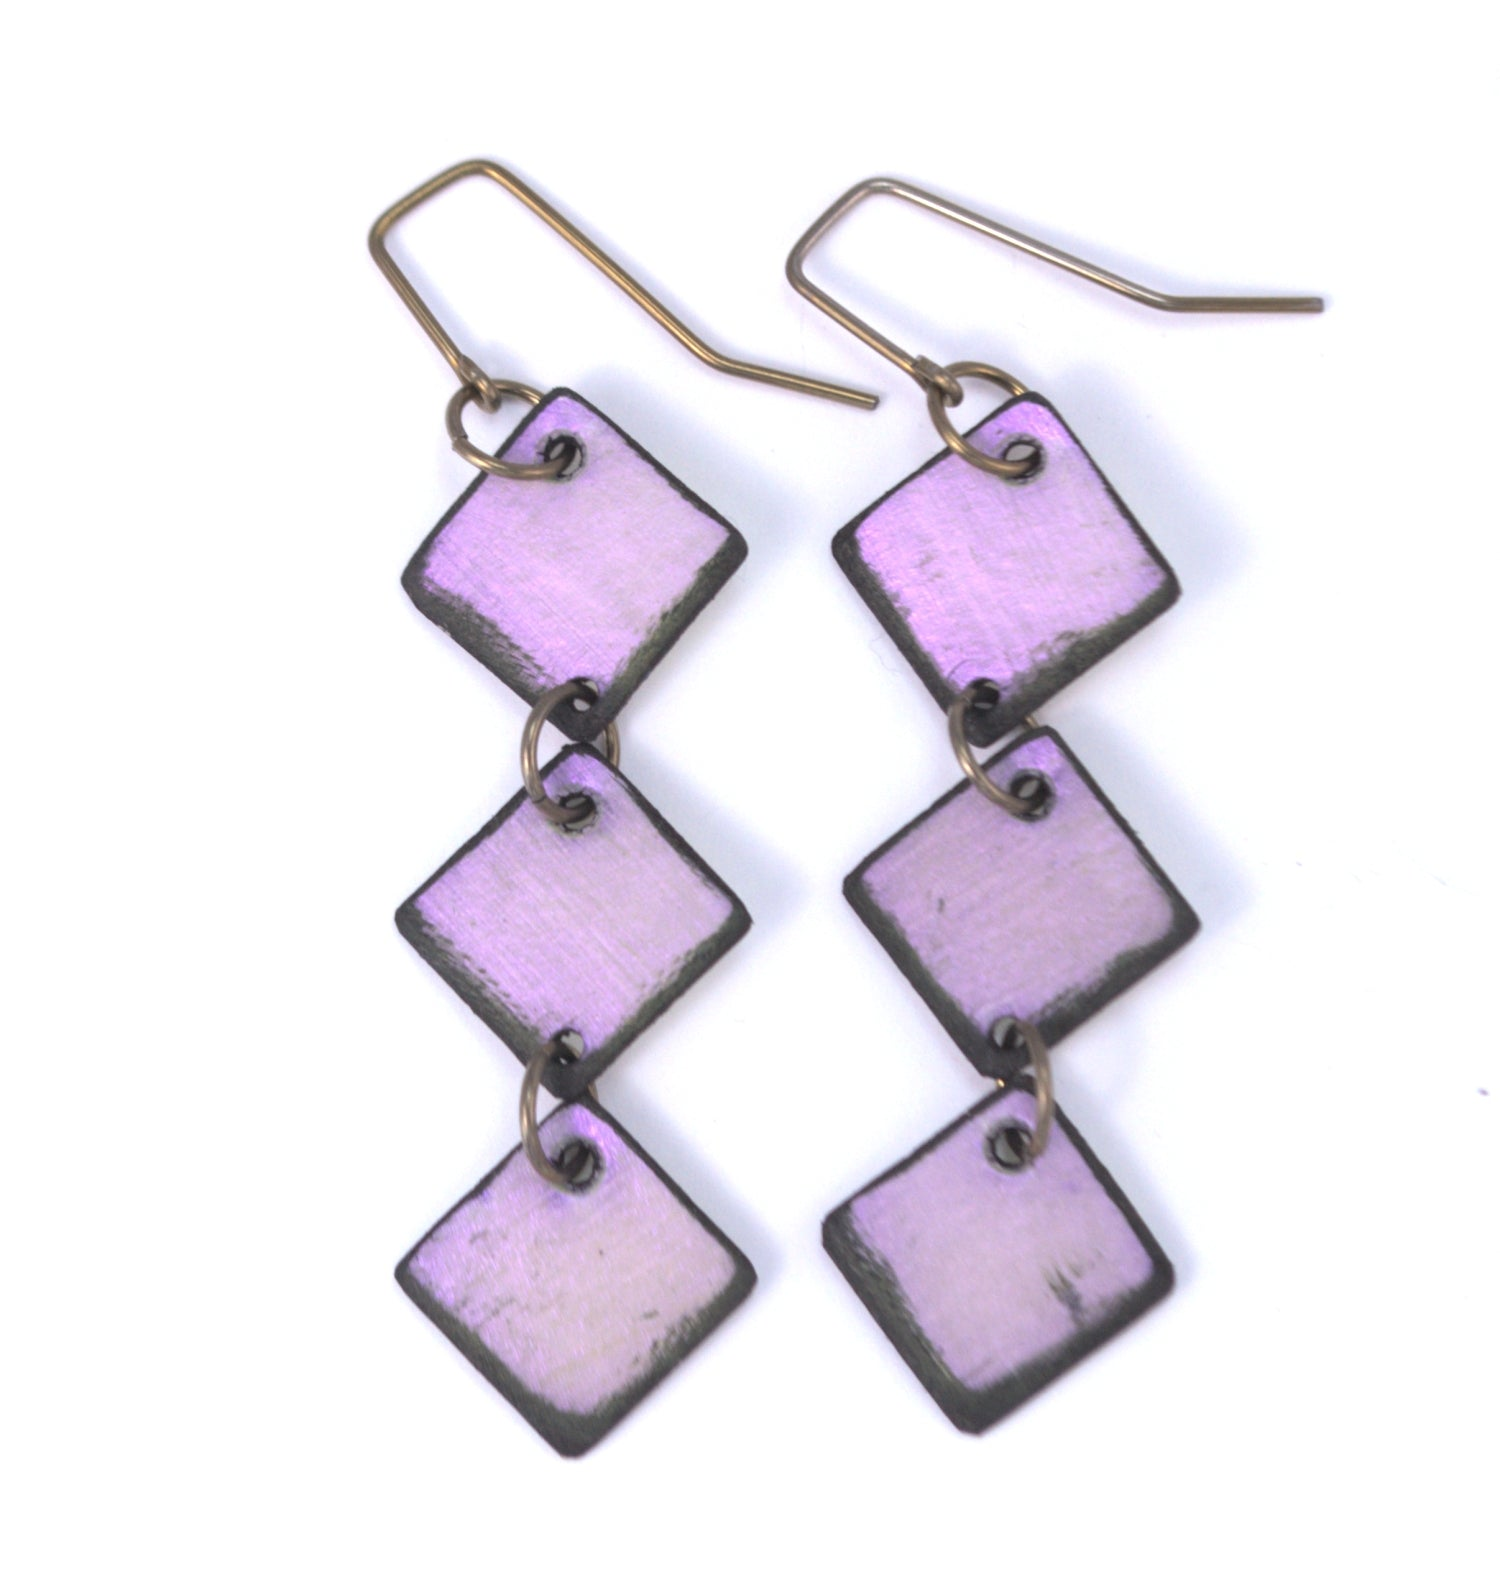 Violet Diamond Lil Earrings made from lightweight rawhide with hypoallergenic ear wires